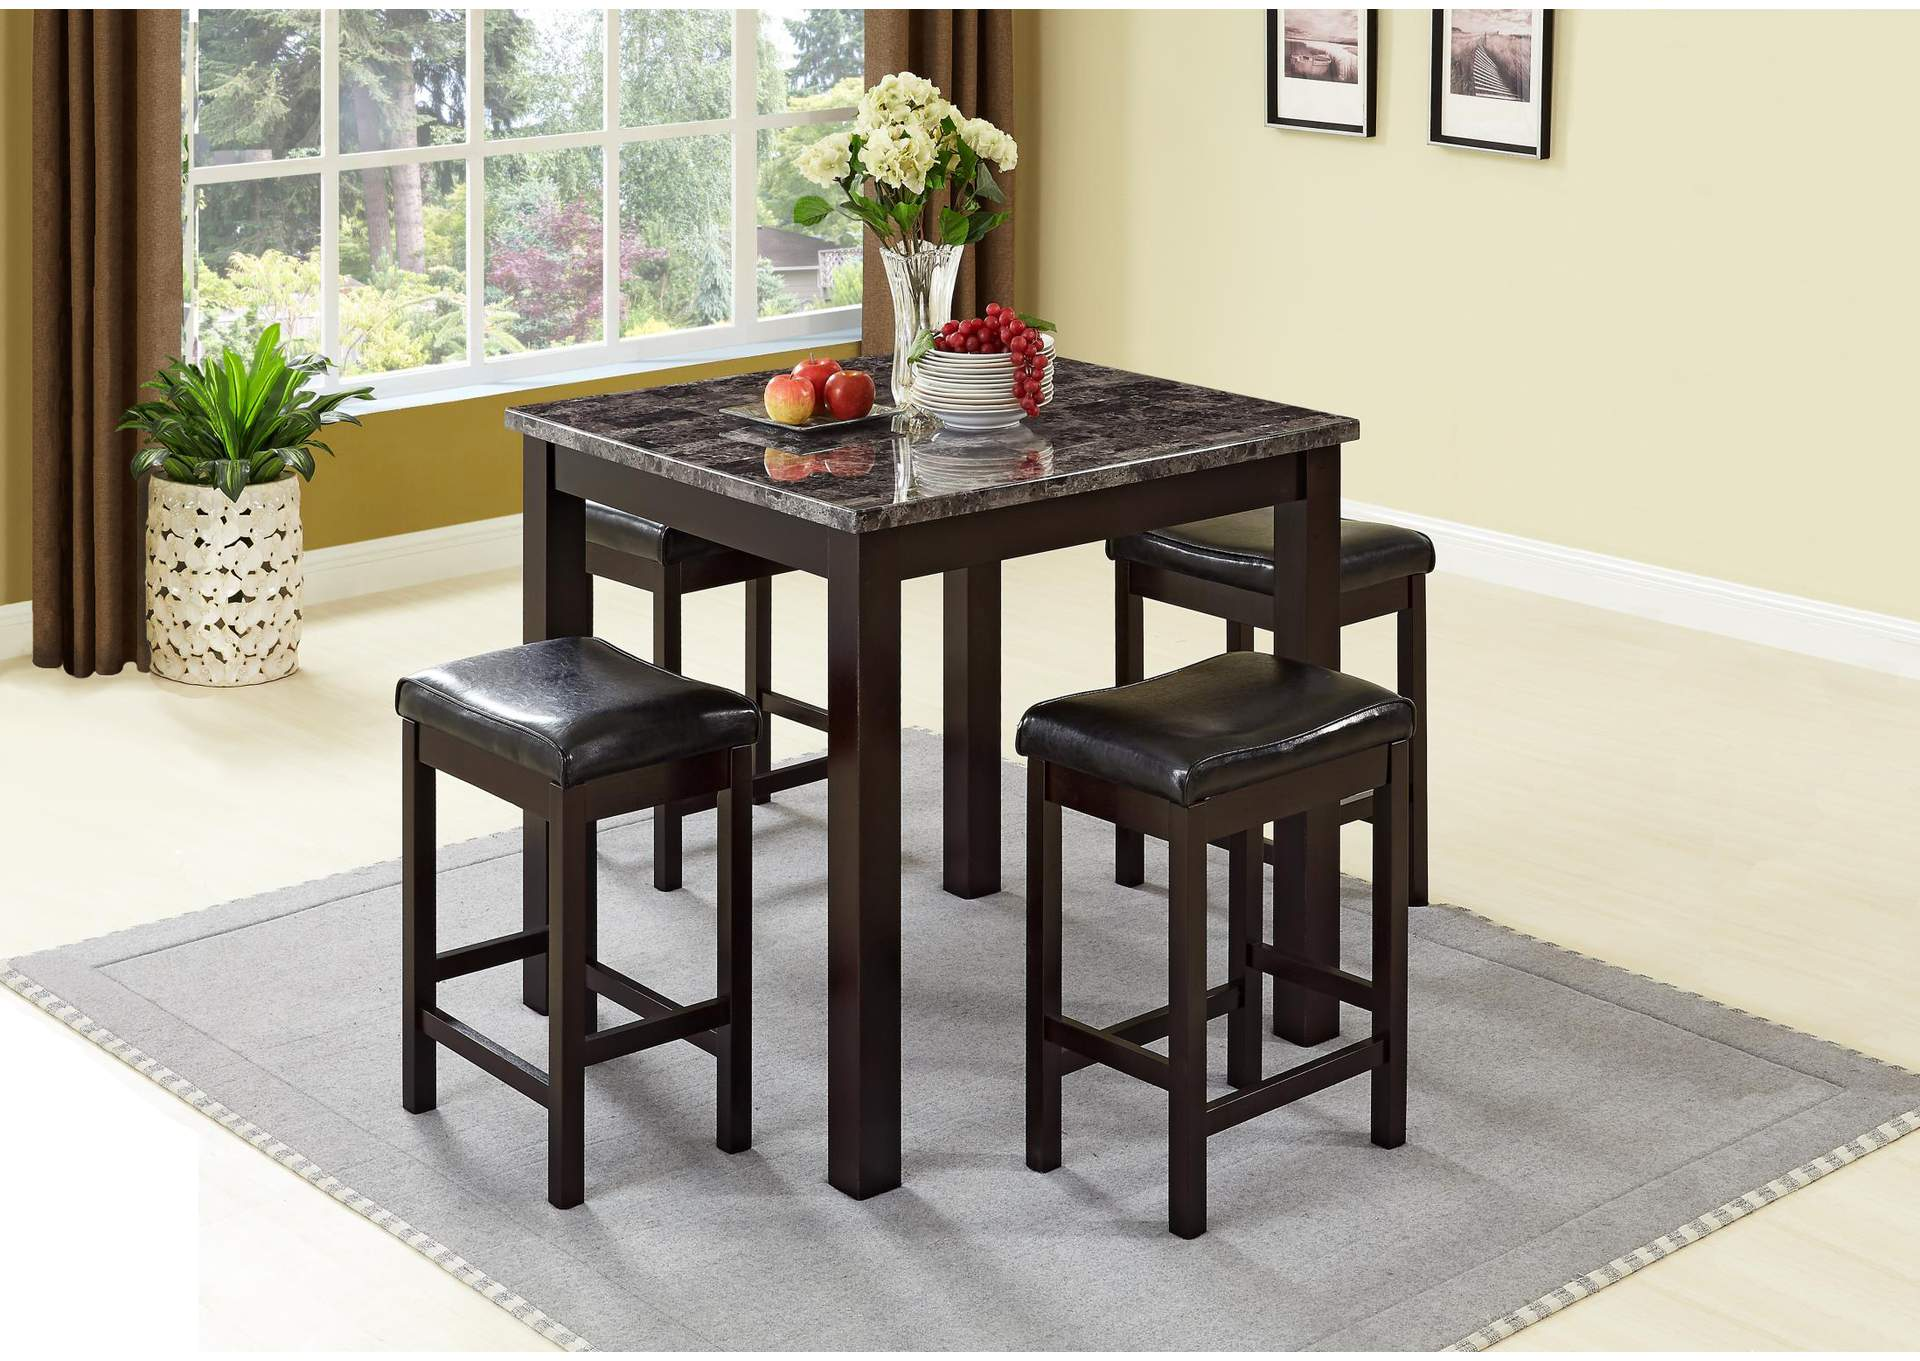 Brown 5 Piece Marble Top Dining Set w/ 4 Stools,Global Trading